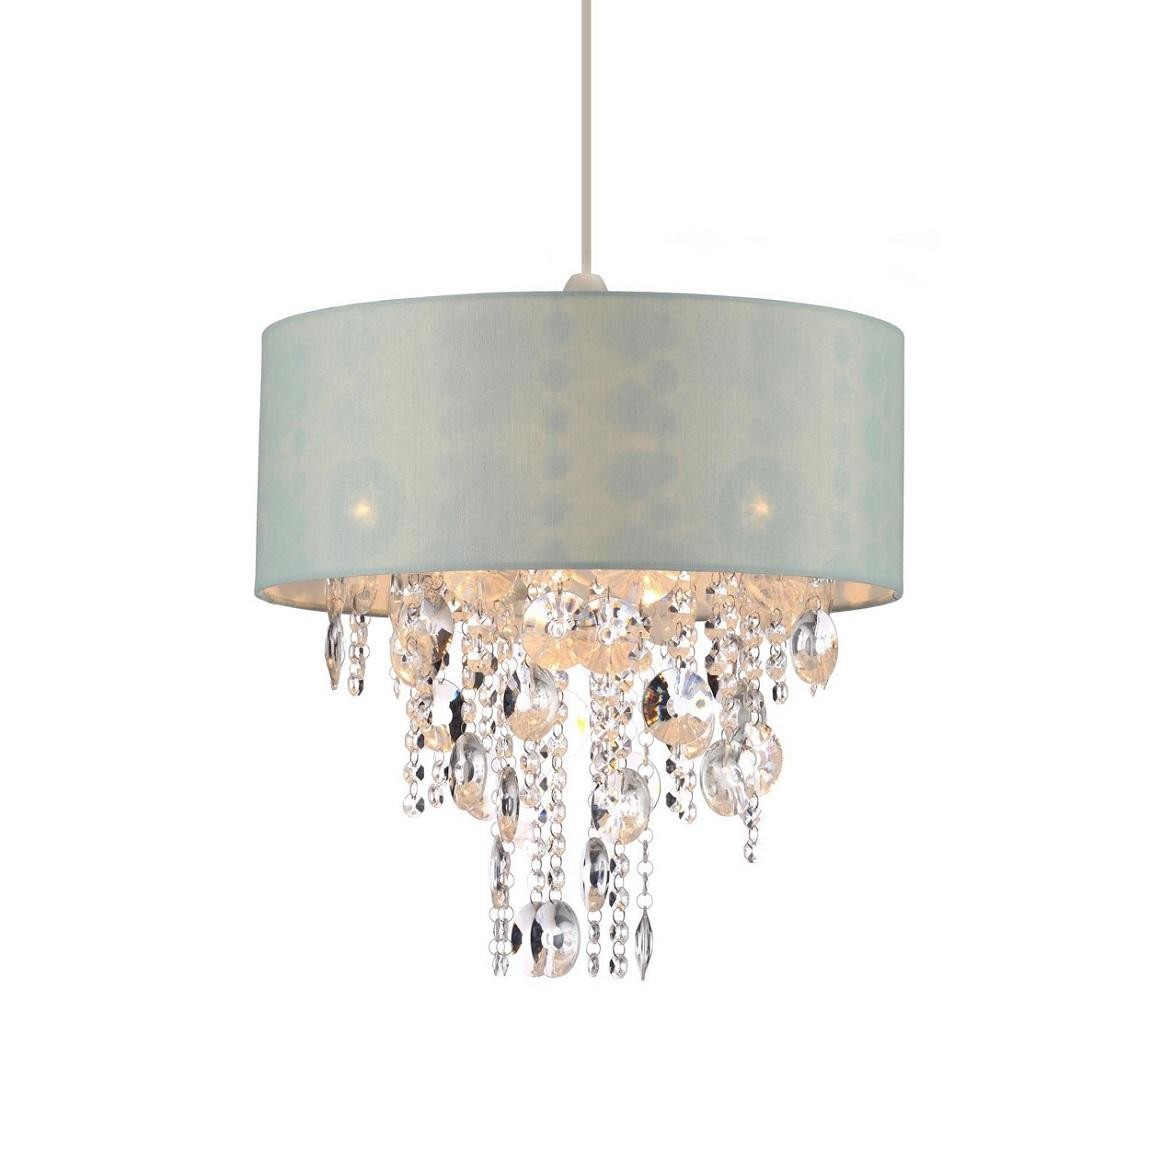 Debenhams Home Collection 'Sydney' Easy Fit Light Shade